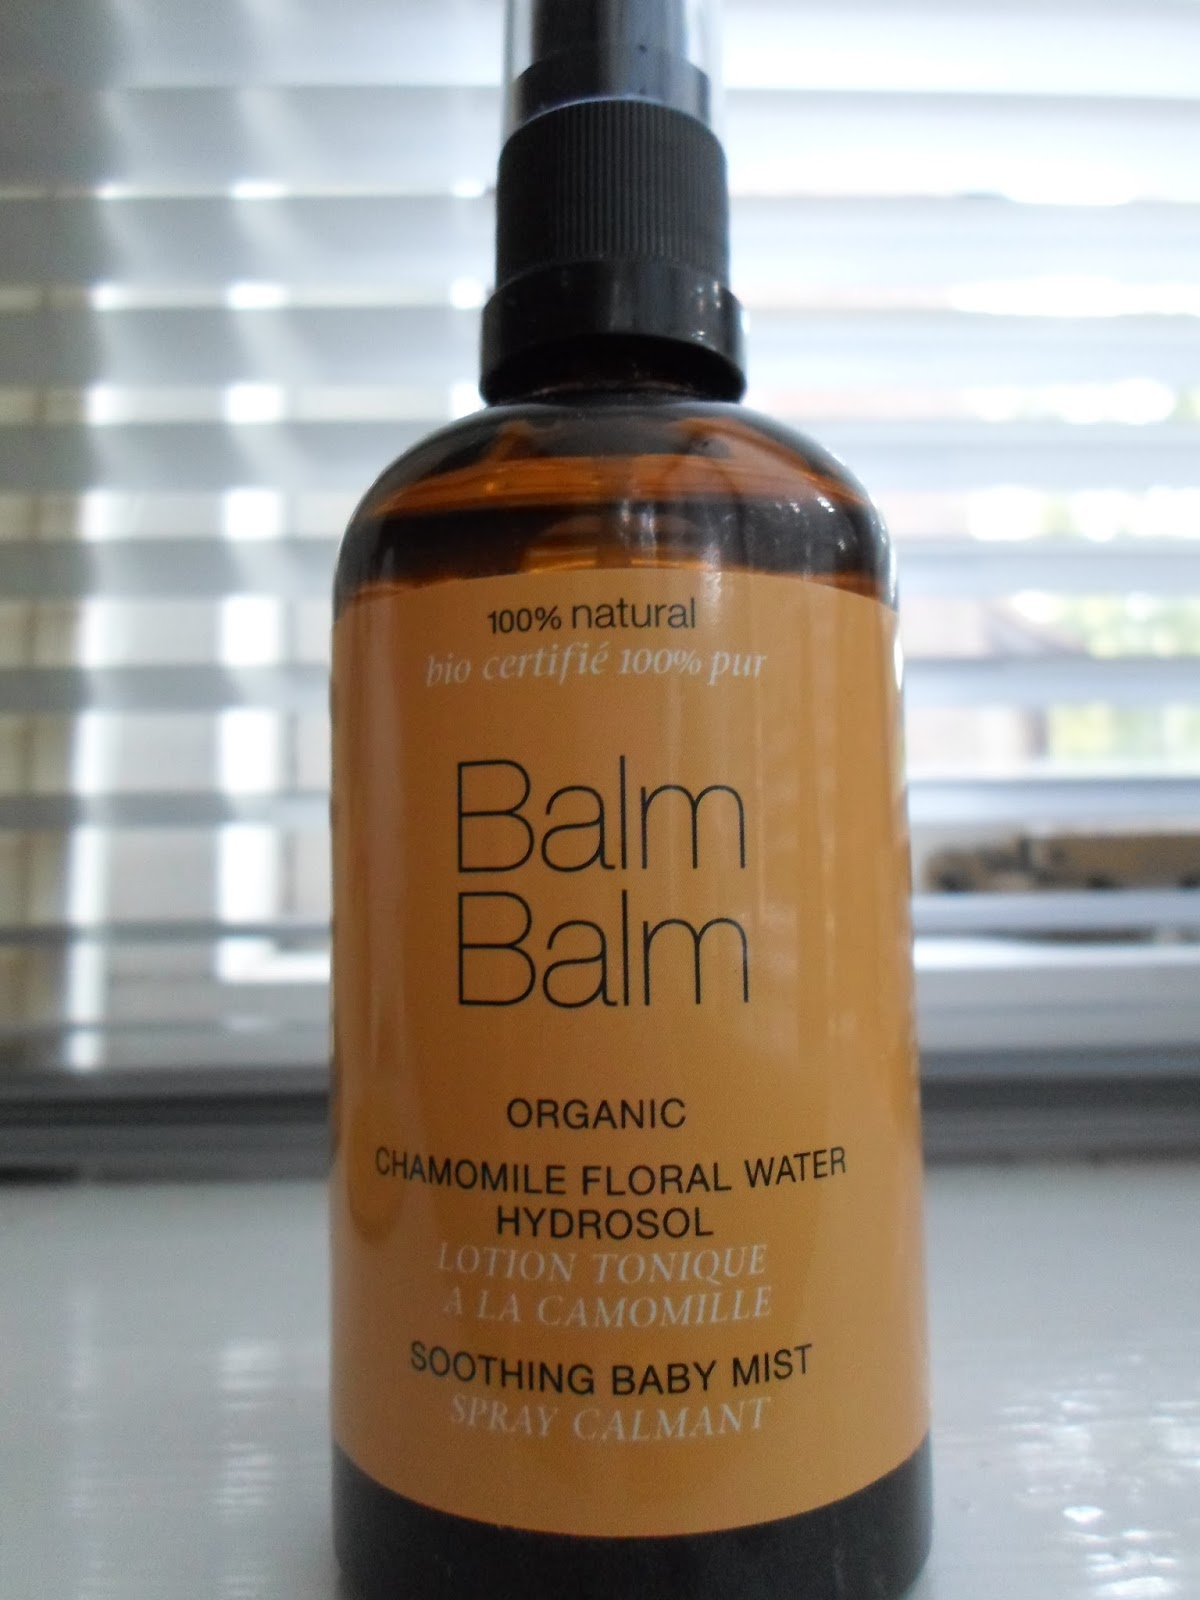 Balm Balm Organic Chamomile Floral Water - Soothing Baby Mist